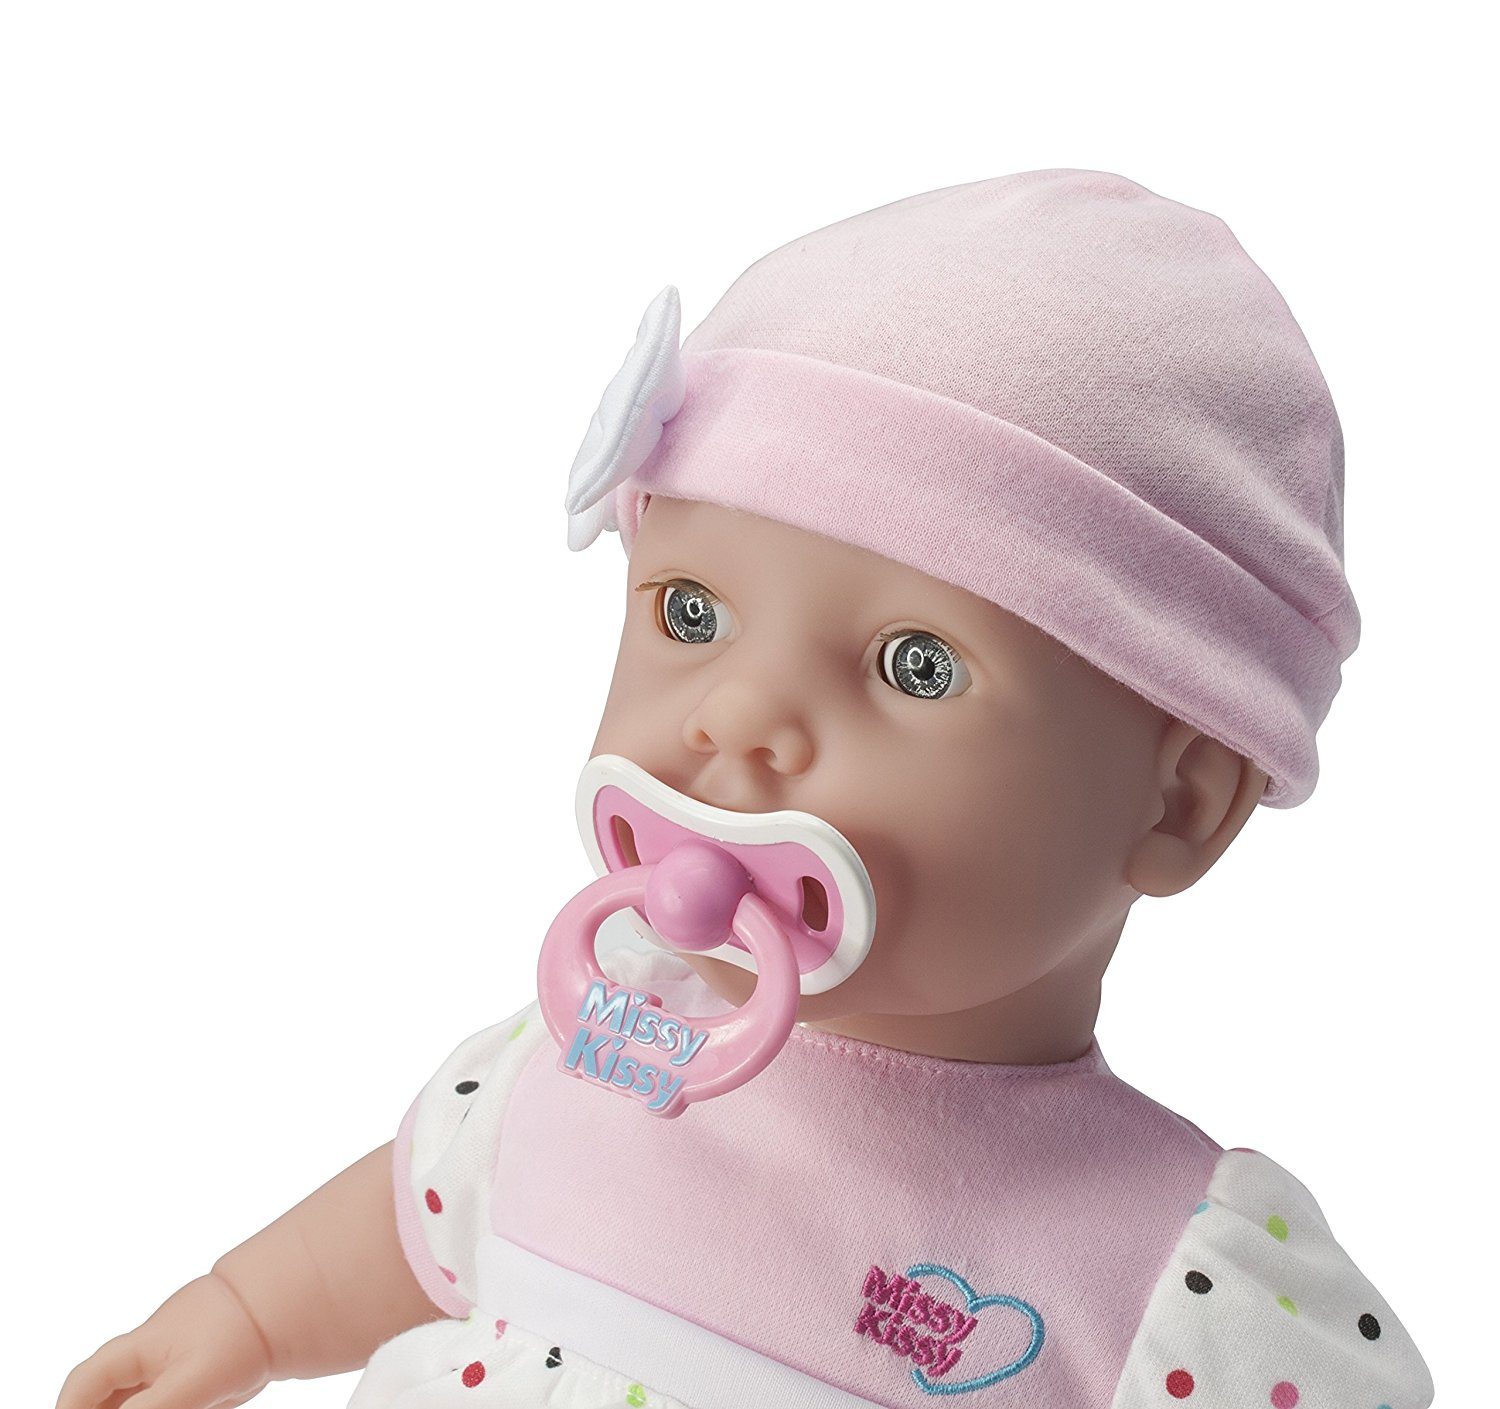 Missy Kissy 15 Soft Body Giggle Time Electronic Interactive Doll